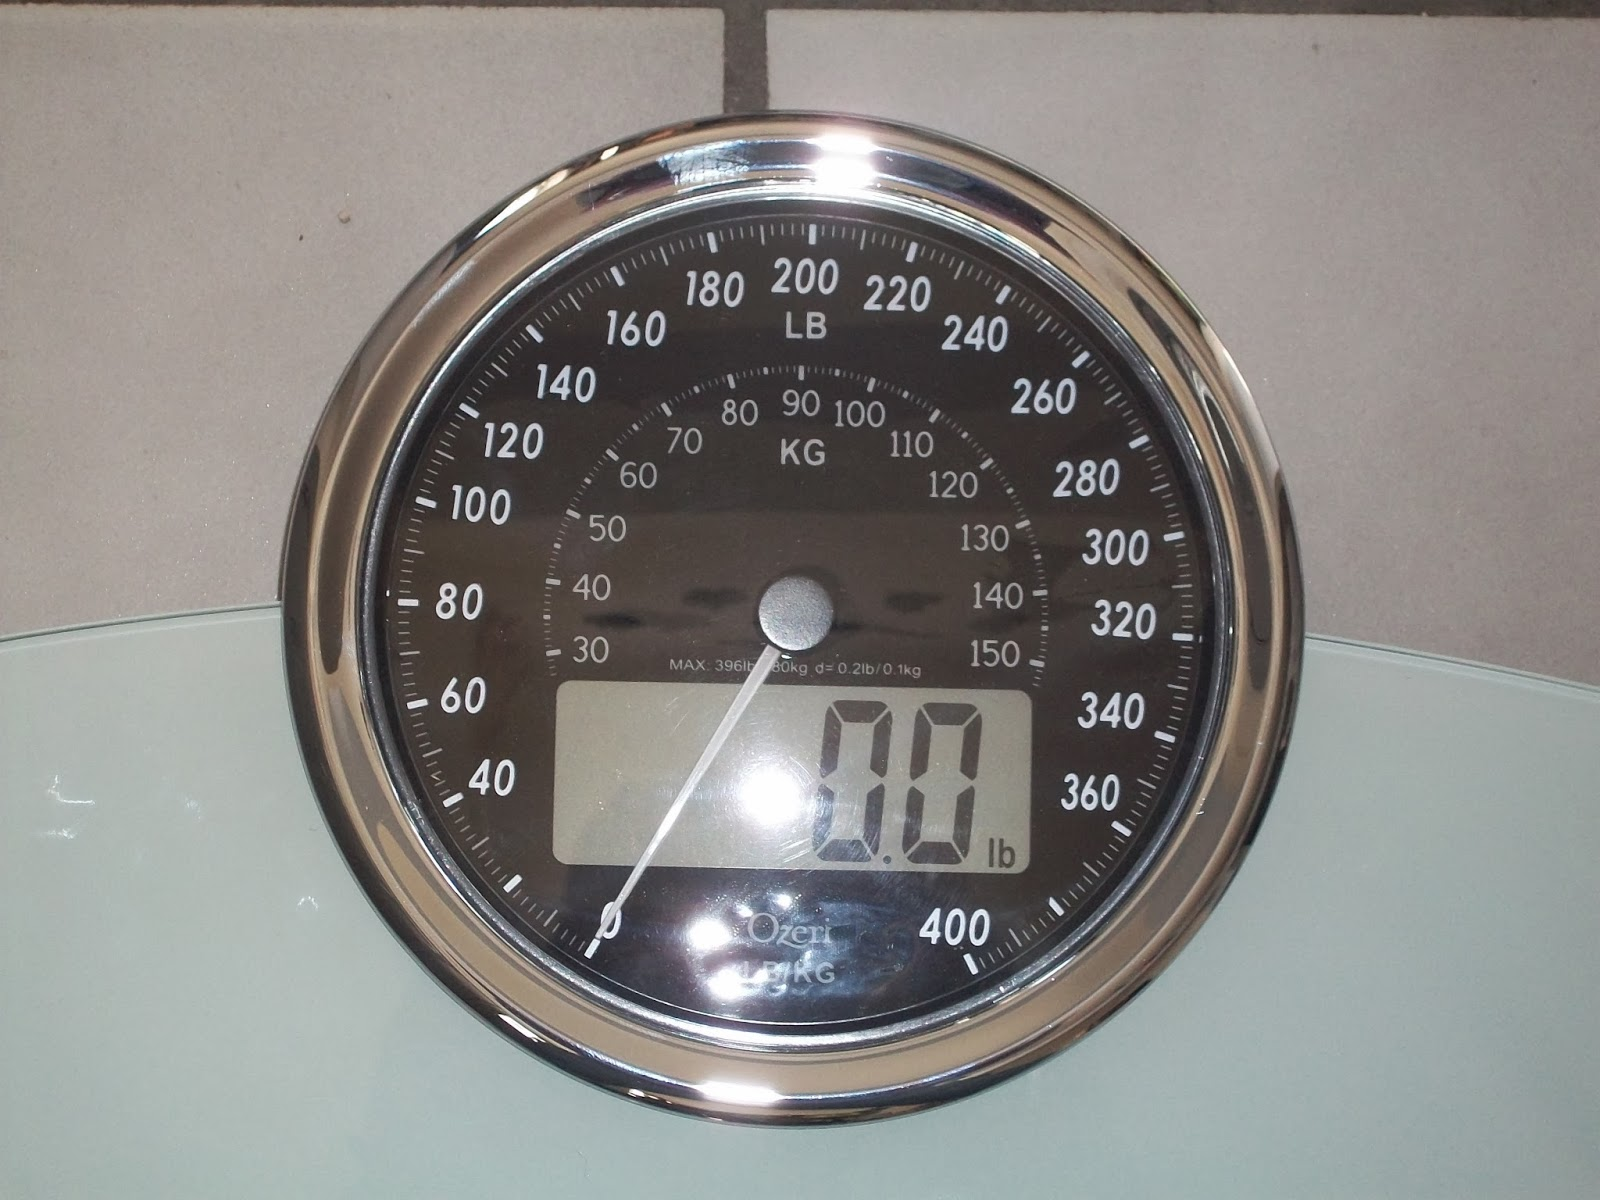 Most accurate bathroom scale 2014 - So If You Are Looking For A Scale That Will Look Cool In Any Bathroom The Ozeri Rev Digital Bathroom Scale Is The One As With All Ozeri Products